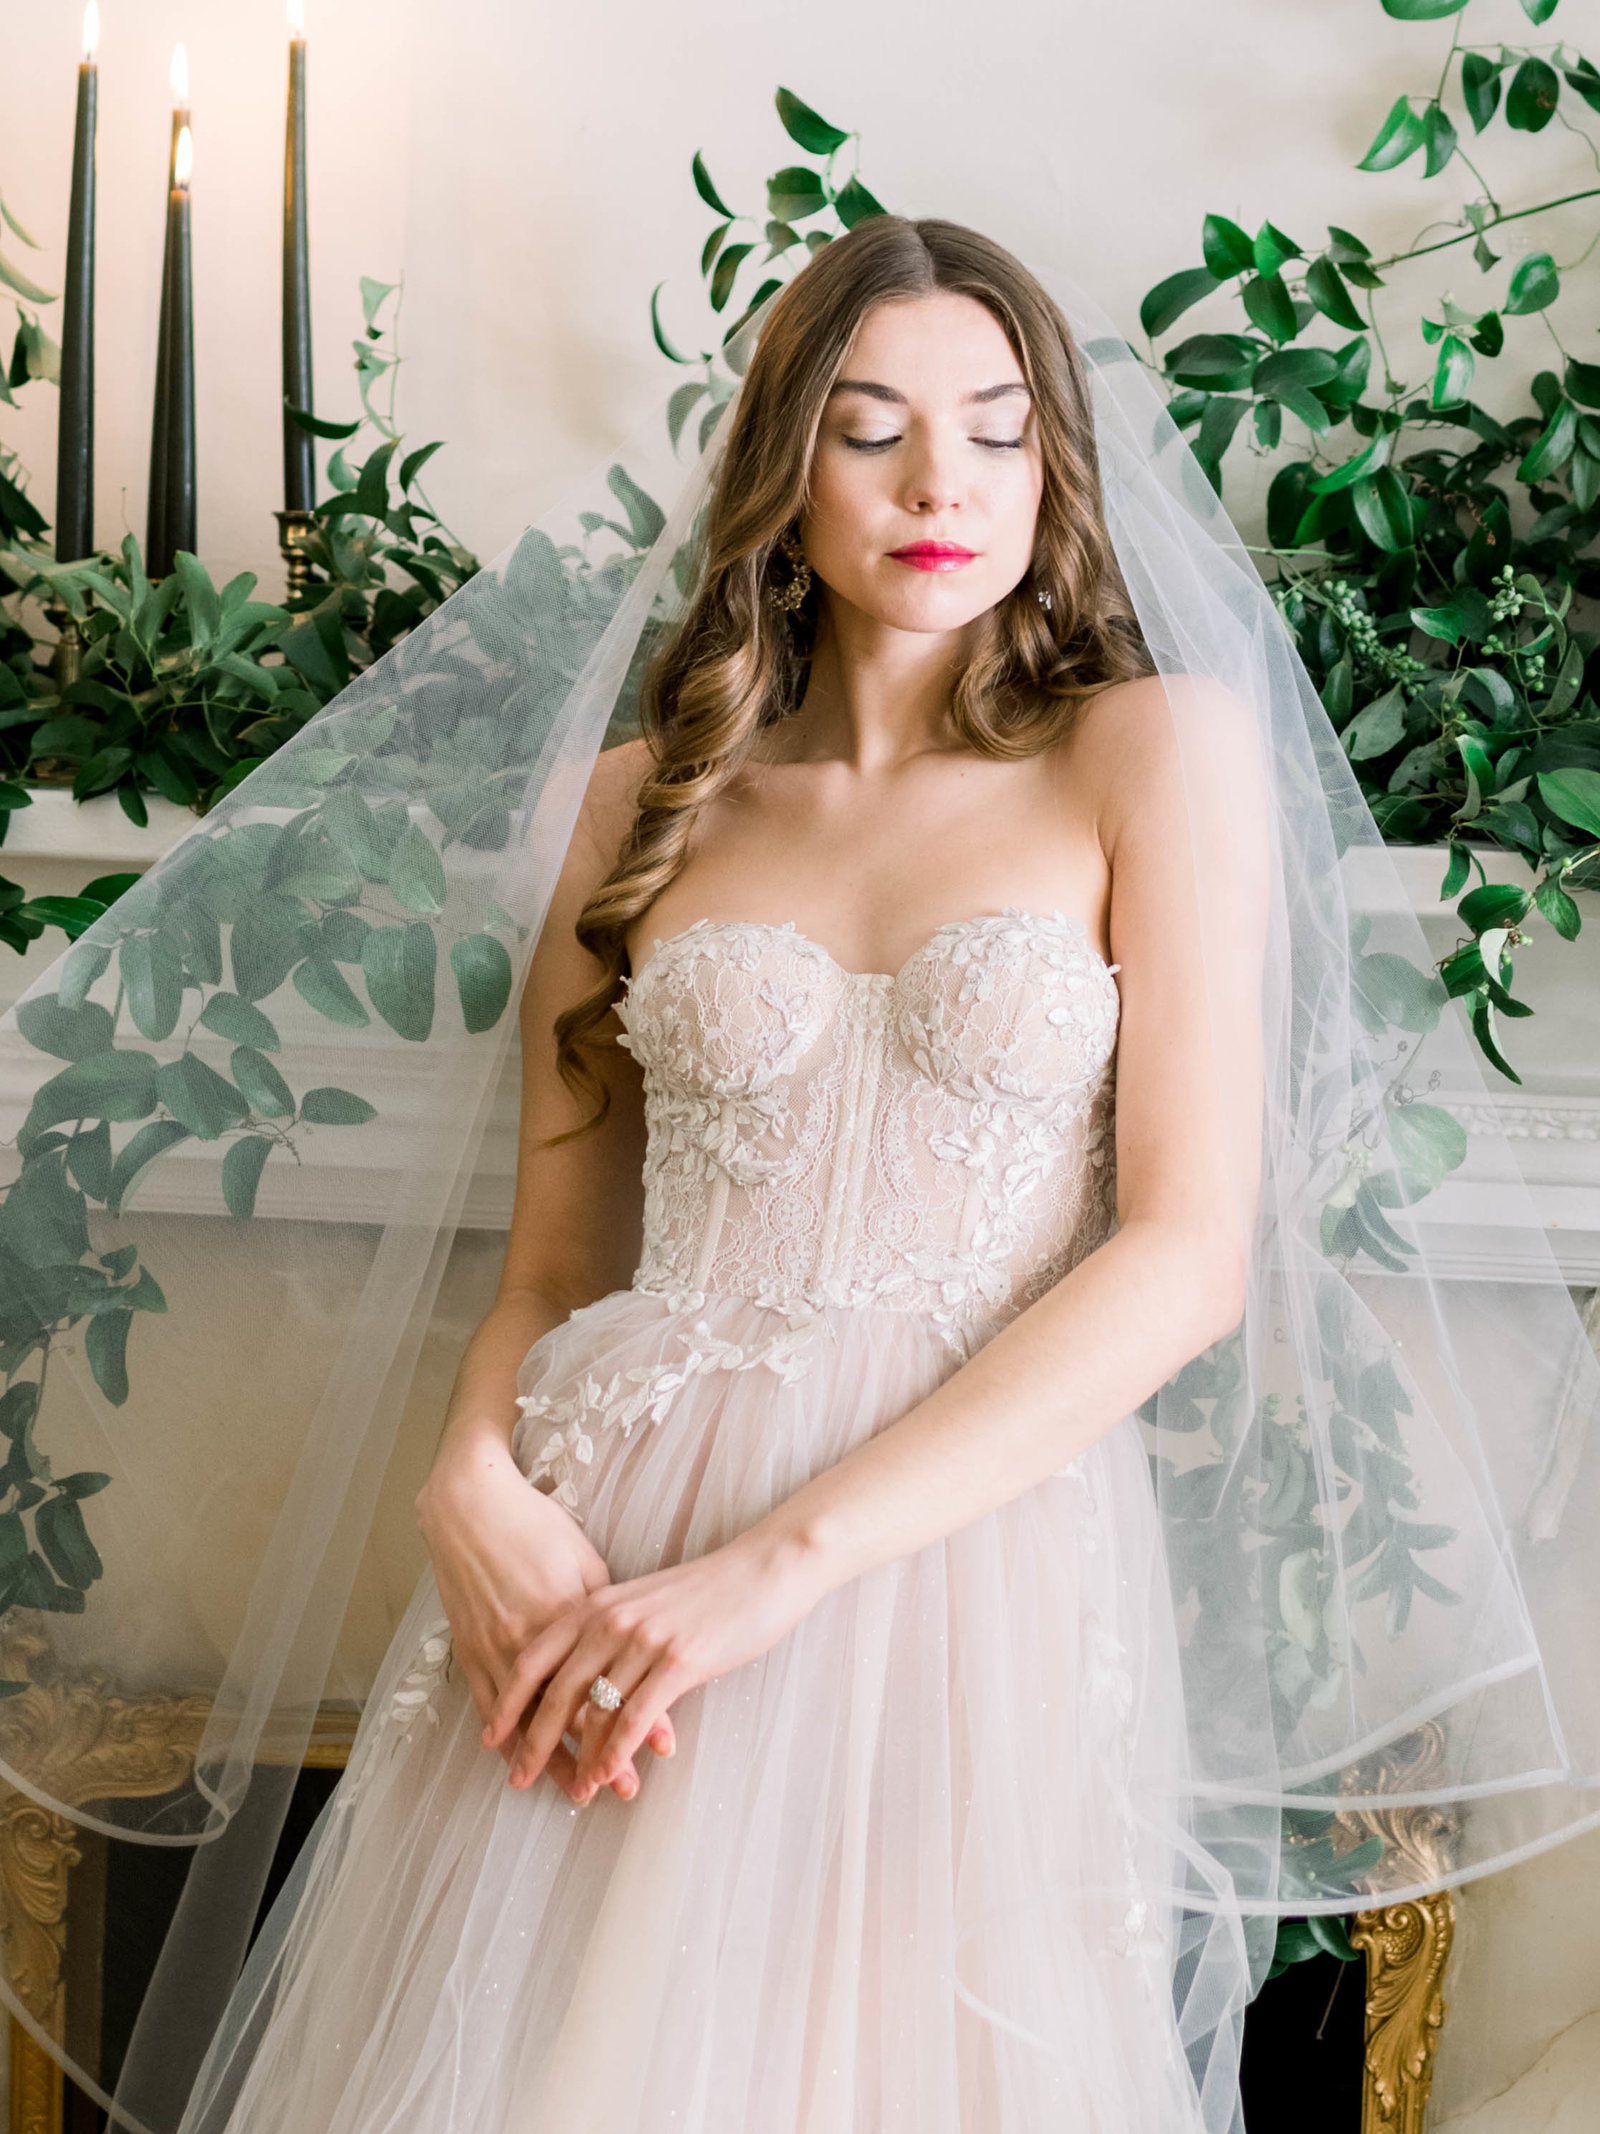 Fine art bridal editorial with Reem Acra gown in New York City by Liz Andolina Photography